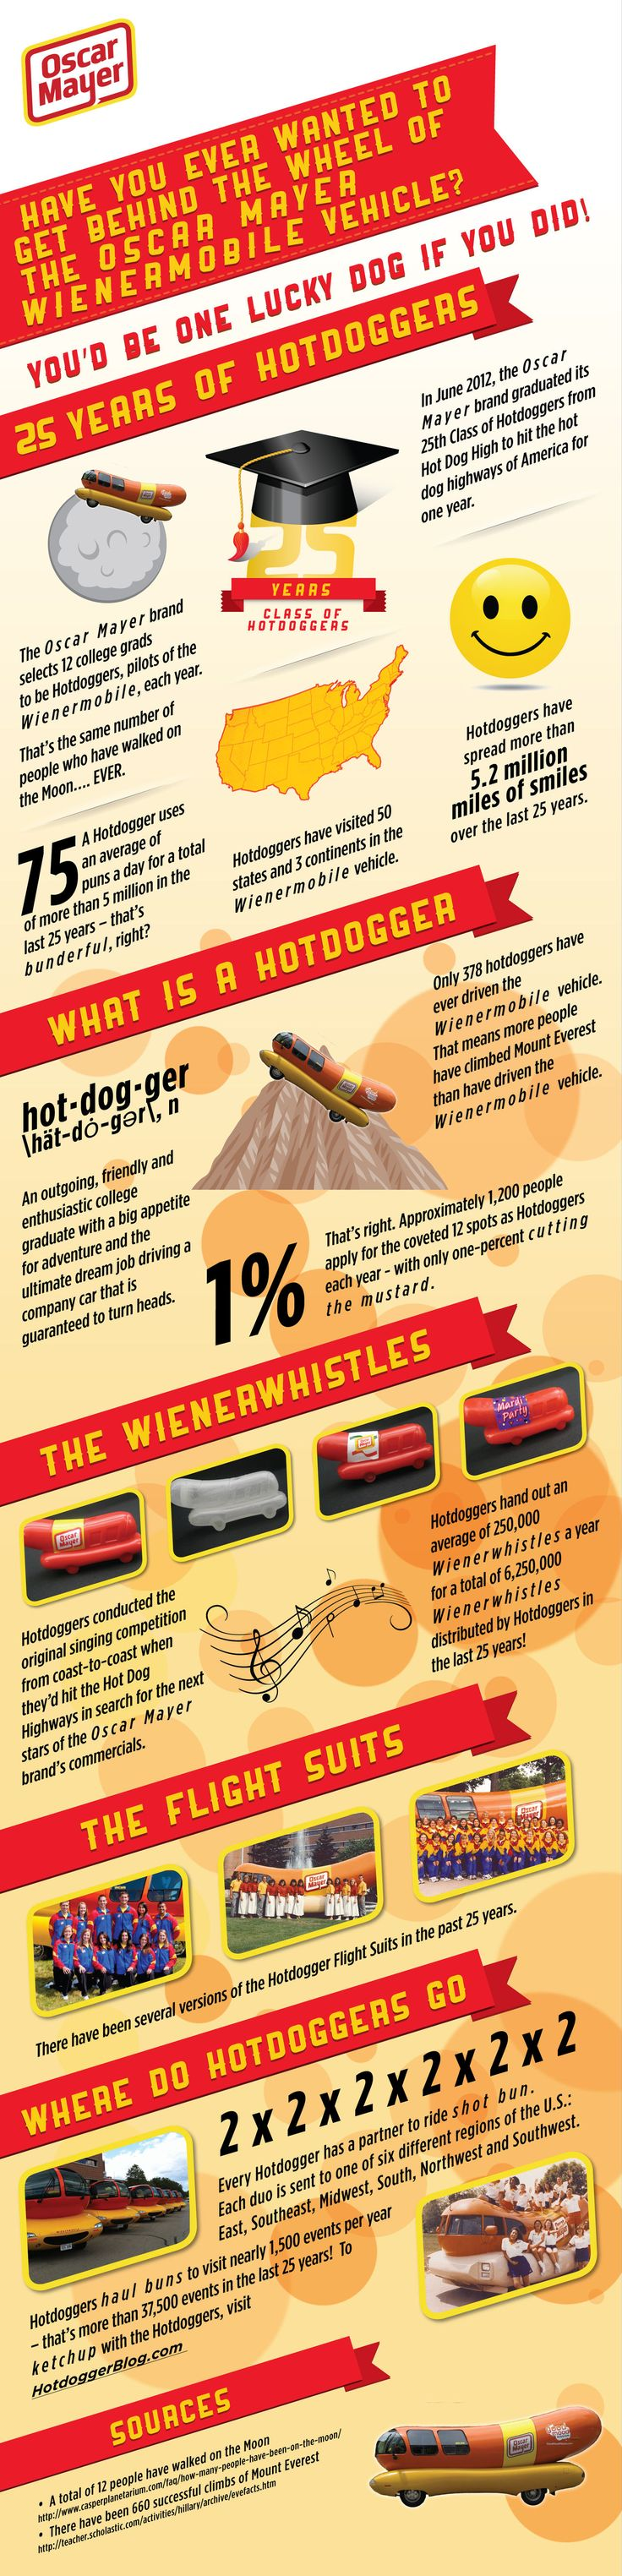 Oscar Mayer: 25 Years of Hotdoggers (infographic) - Have you ever wanted to get behind the wheel of the Oscar Mayer Wienermobile? Designed by mazziottidesign